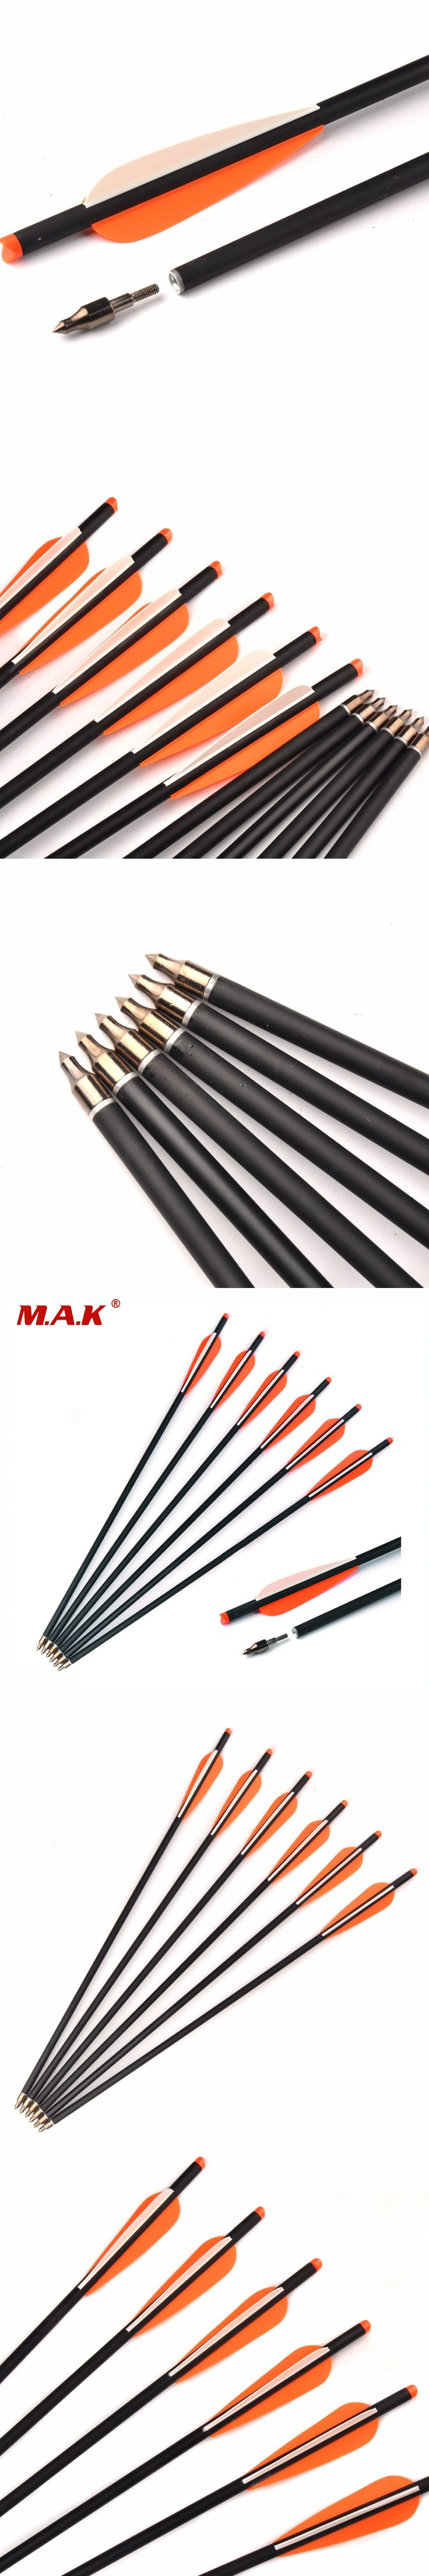 6/12/24 pcs Mixed Carbon Crossbow Arrow Length 20 Inch Diameter 8.8 mm Spine 300 Changeable Arrowheads for Archery Hunting